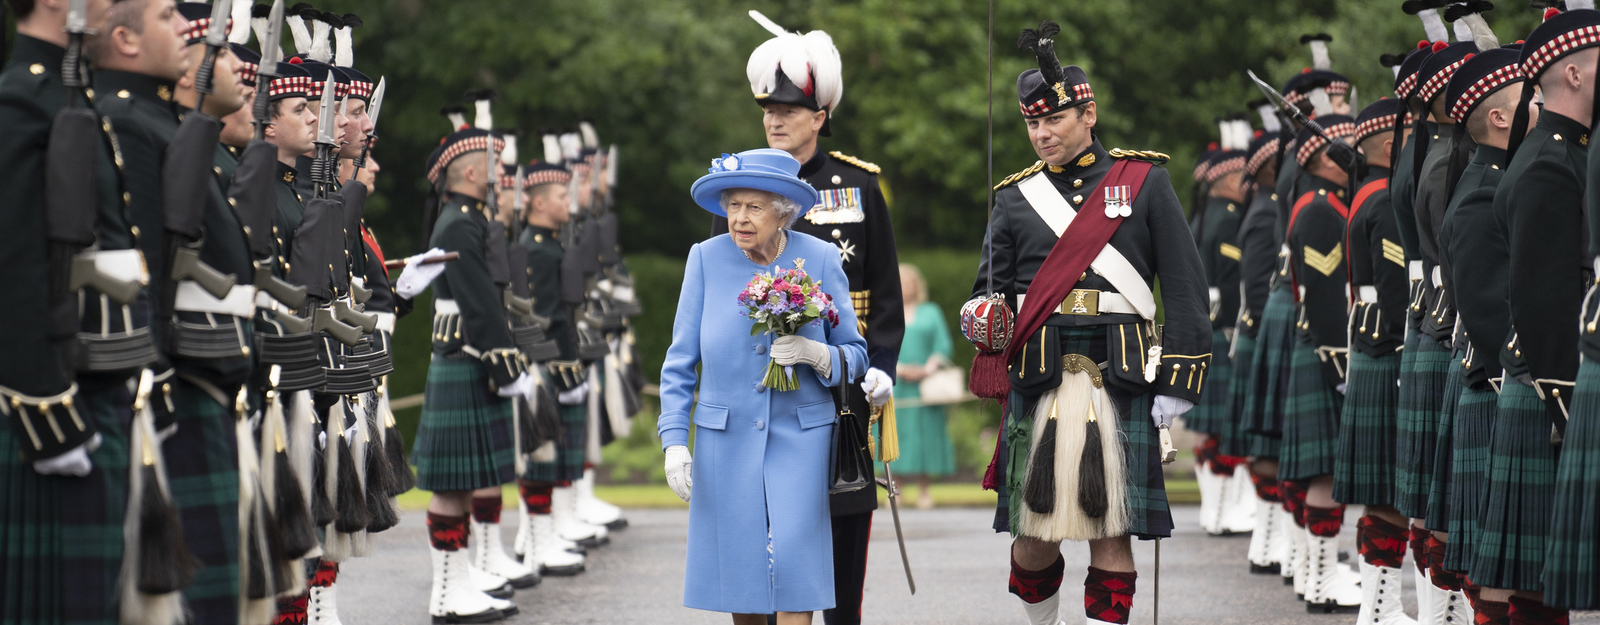 Queen at the Ceremony of the Keys 2021. Walking in a blue dress between tartan clad pipers